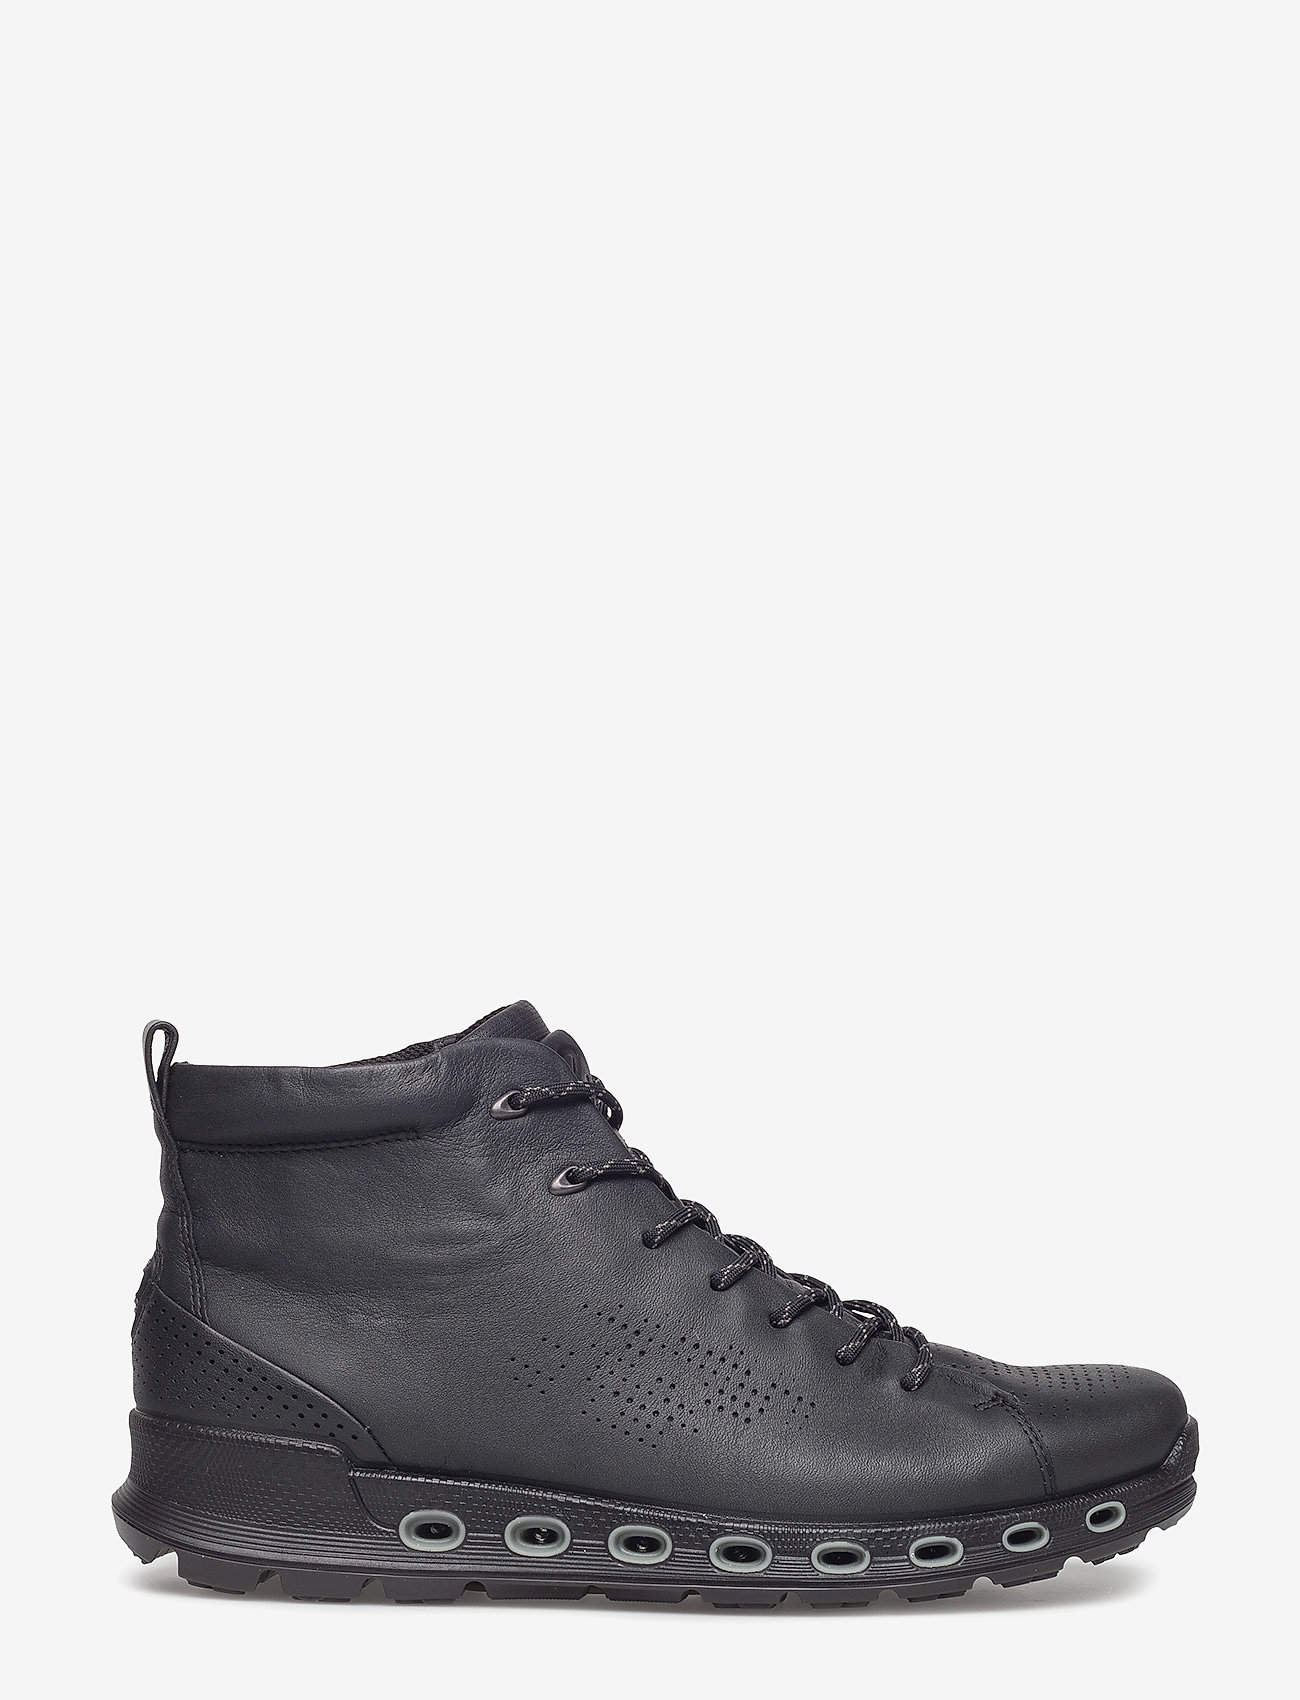 ECCO - COOL 2.0 - laced boots - black - 1